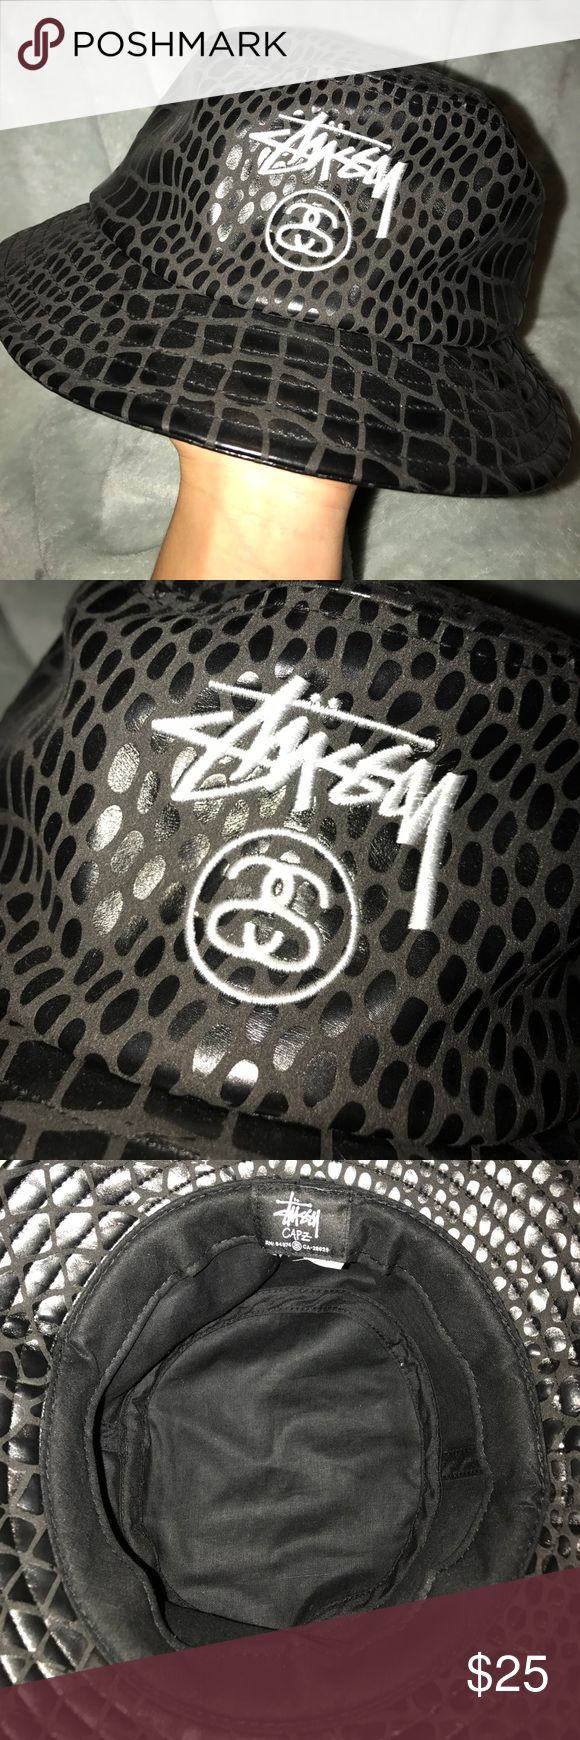 STUSSY BLACK BUCKET HAT Never used and in perfect condition. I am up for trades, just leave a comment. Bundle to save money. Flexible on pricing. Don't forget to check out other listings. 💫 Accessories Hats